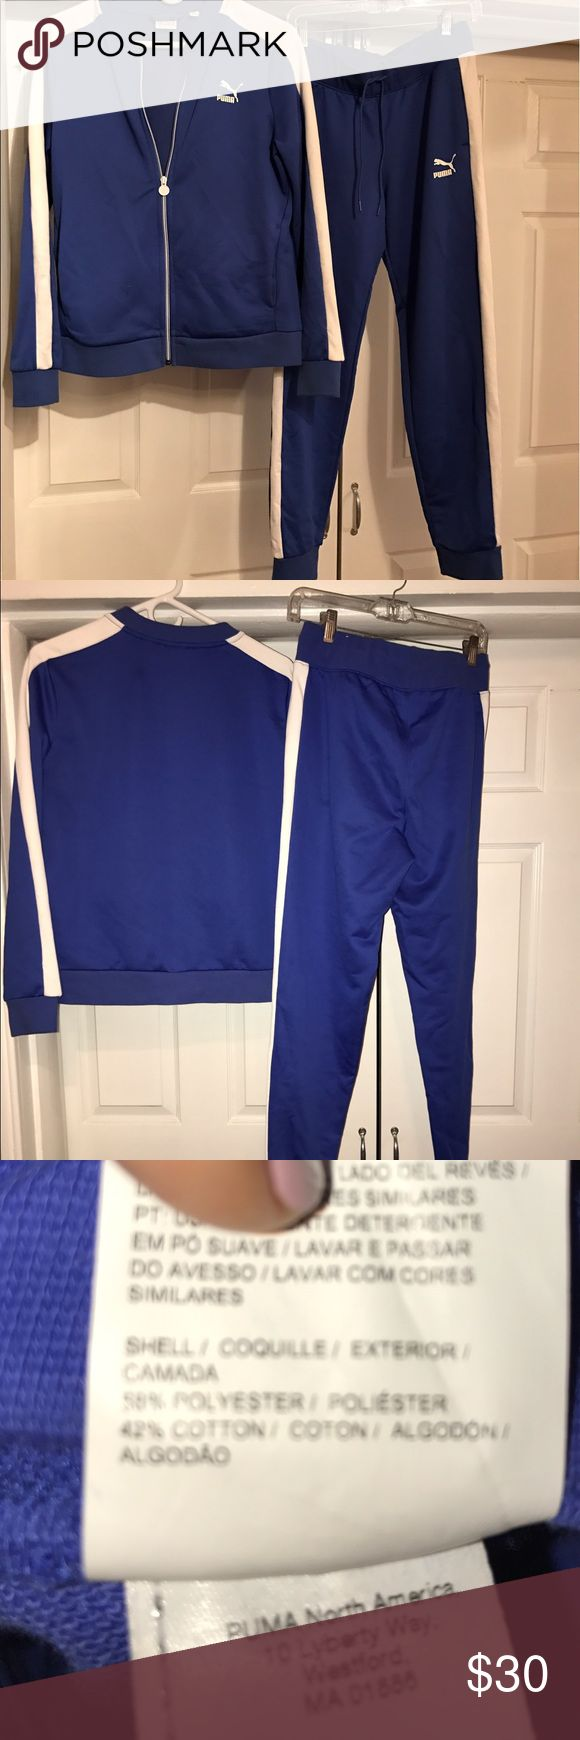 Puma royal blue track jogging suit Pants size M jacket size L:  used:  pants worn once jacket worn a few times:  in great condition:  cotton Poly mix:  would like to sell together but willing to split. Puma Pants Track Pants & Joggers